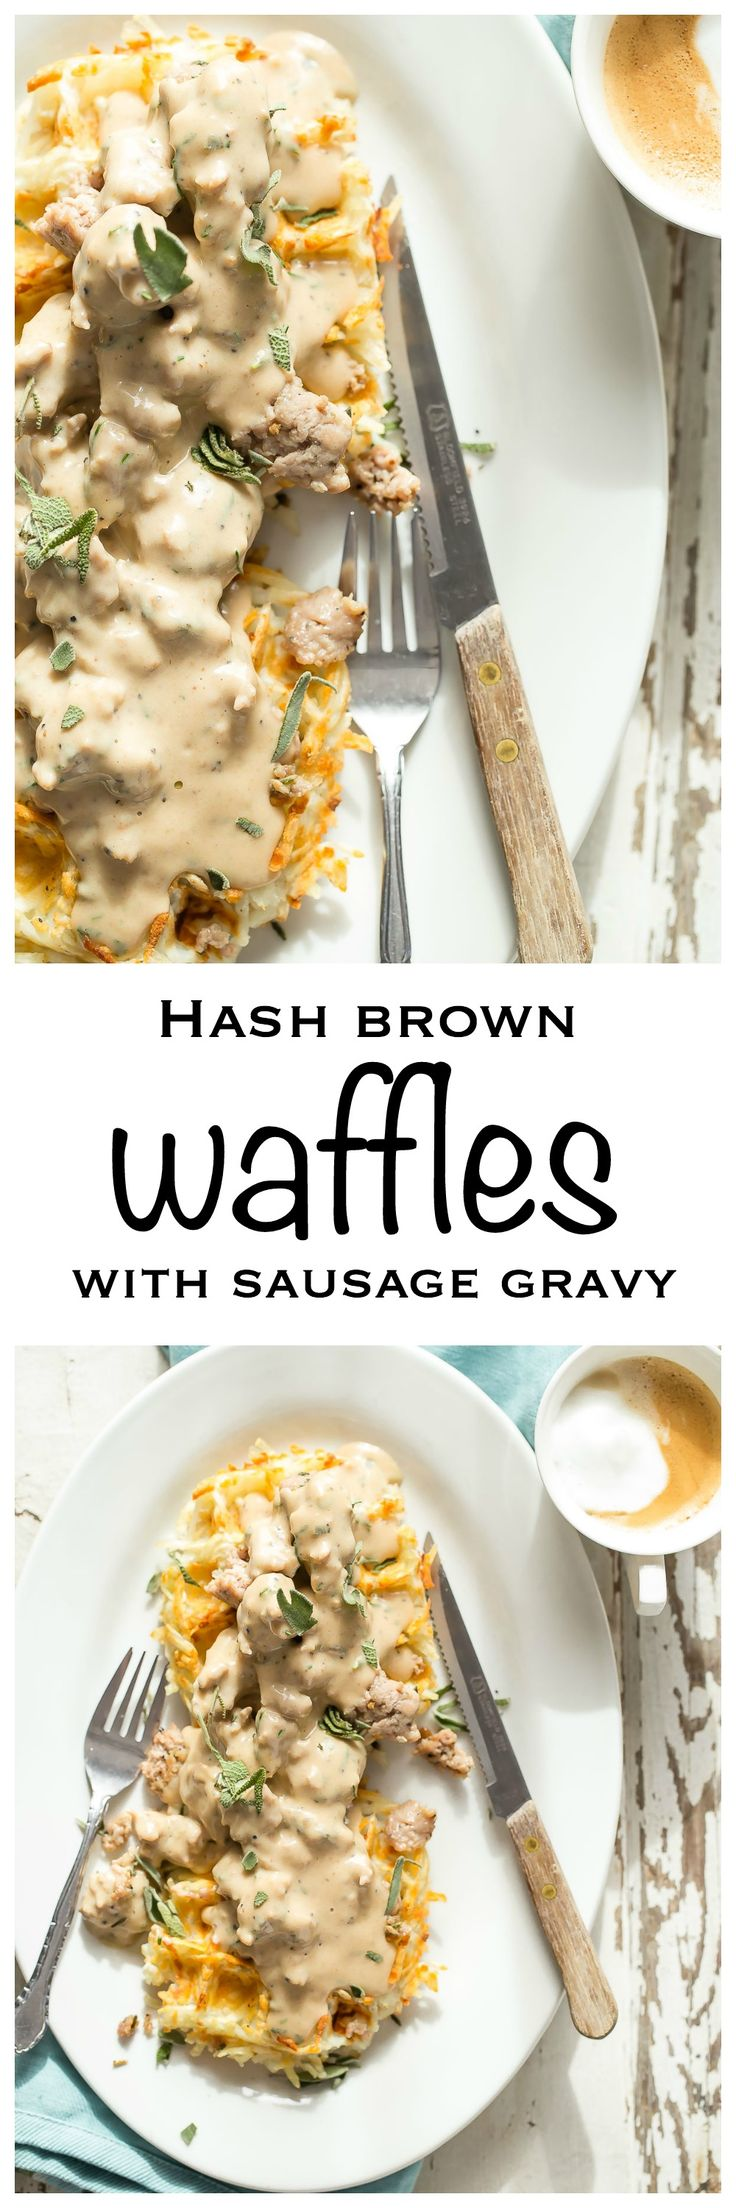 Crispy hash brown waffles covered in a rich rosemary and sage sausage gravy - Foodness Gracious